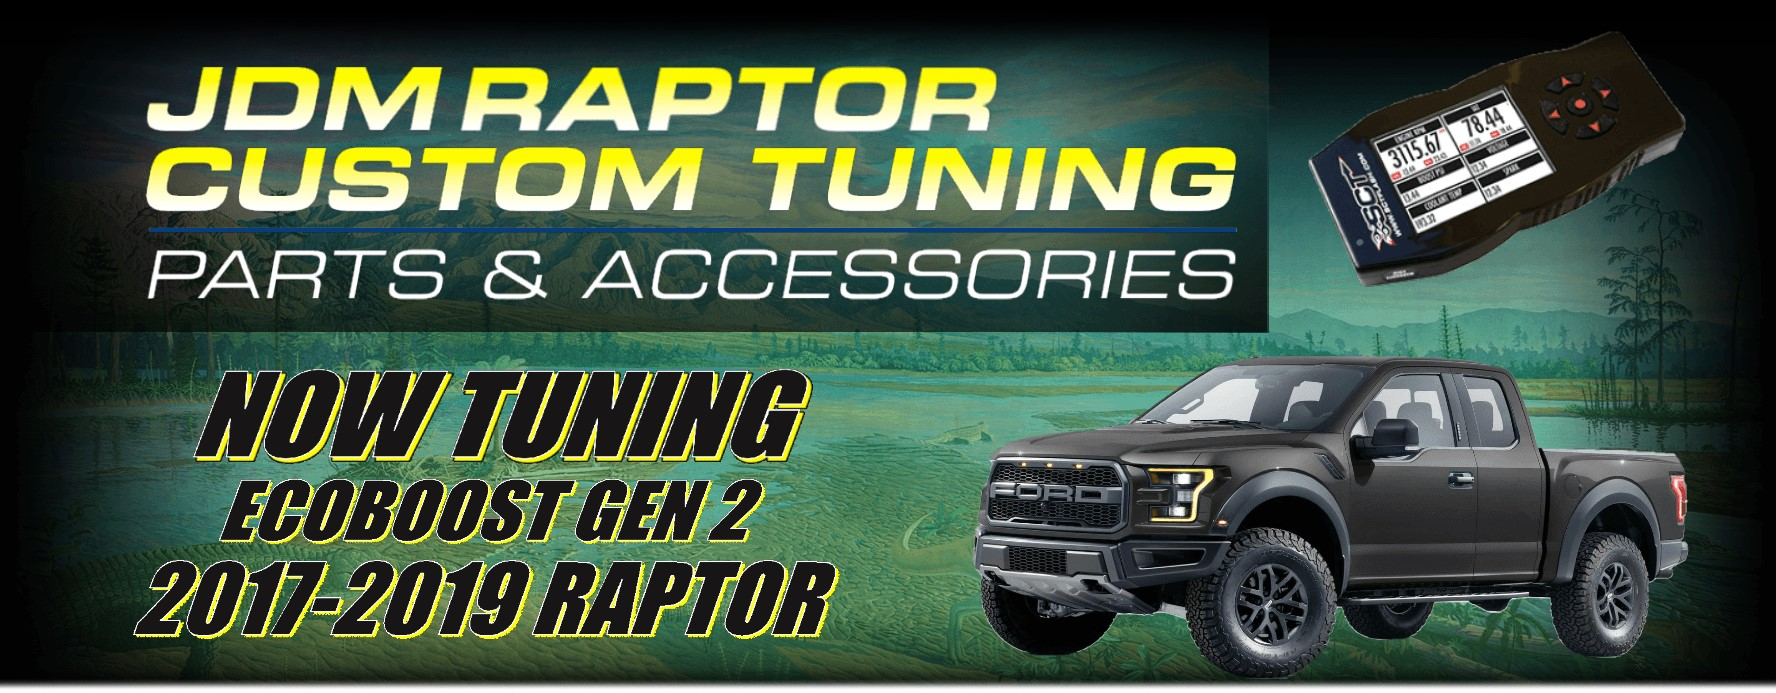 Ford Raptor, Mustang, Shelby, GT500, F-150 Tuning - JDM